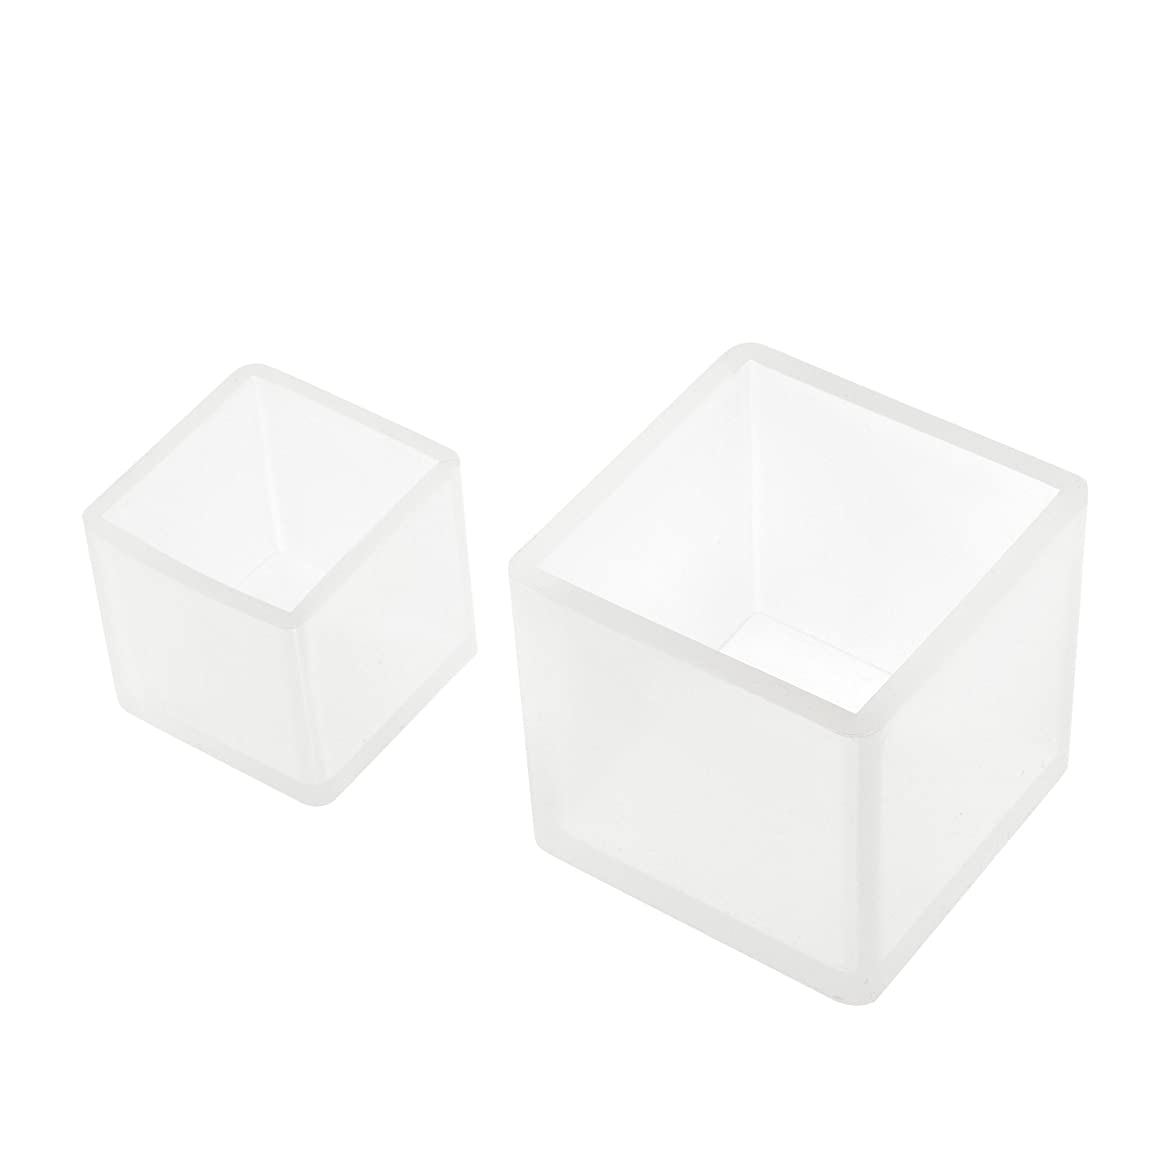 BCP 2pcs Resin Silicone Jewelry DIY Molds Square Liquid Resin Molds for Polymer Clay, Crafting, Resin Epoxy, Jewelry Making